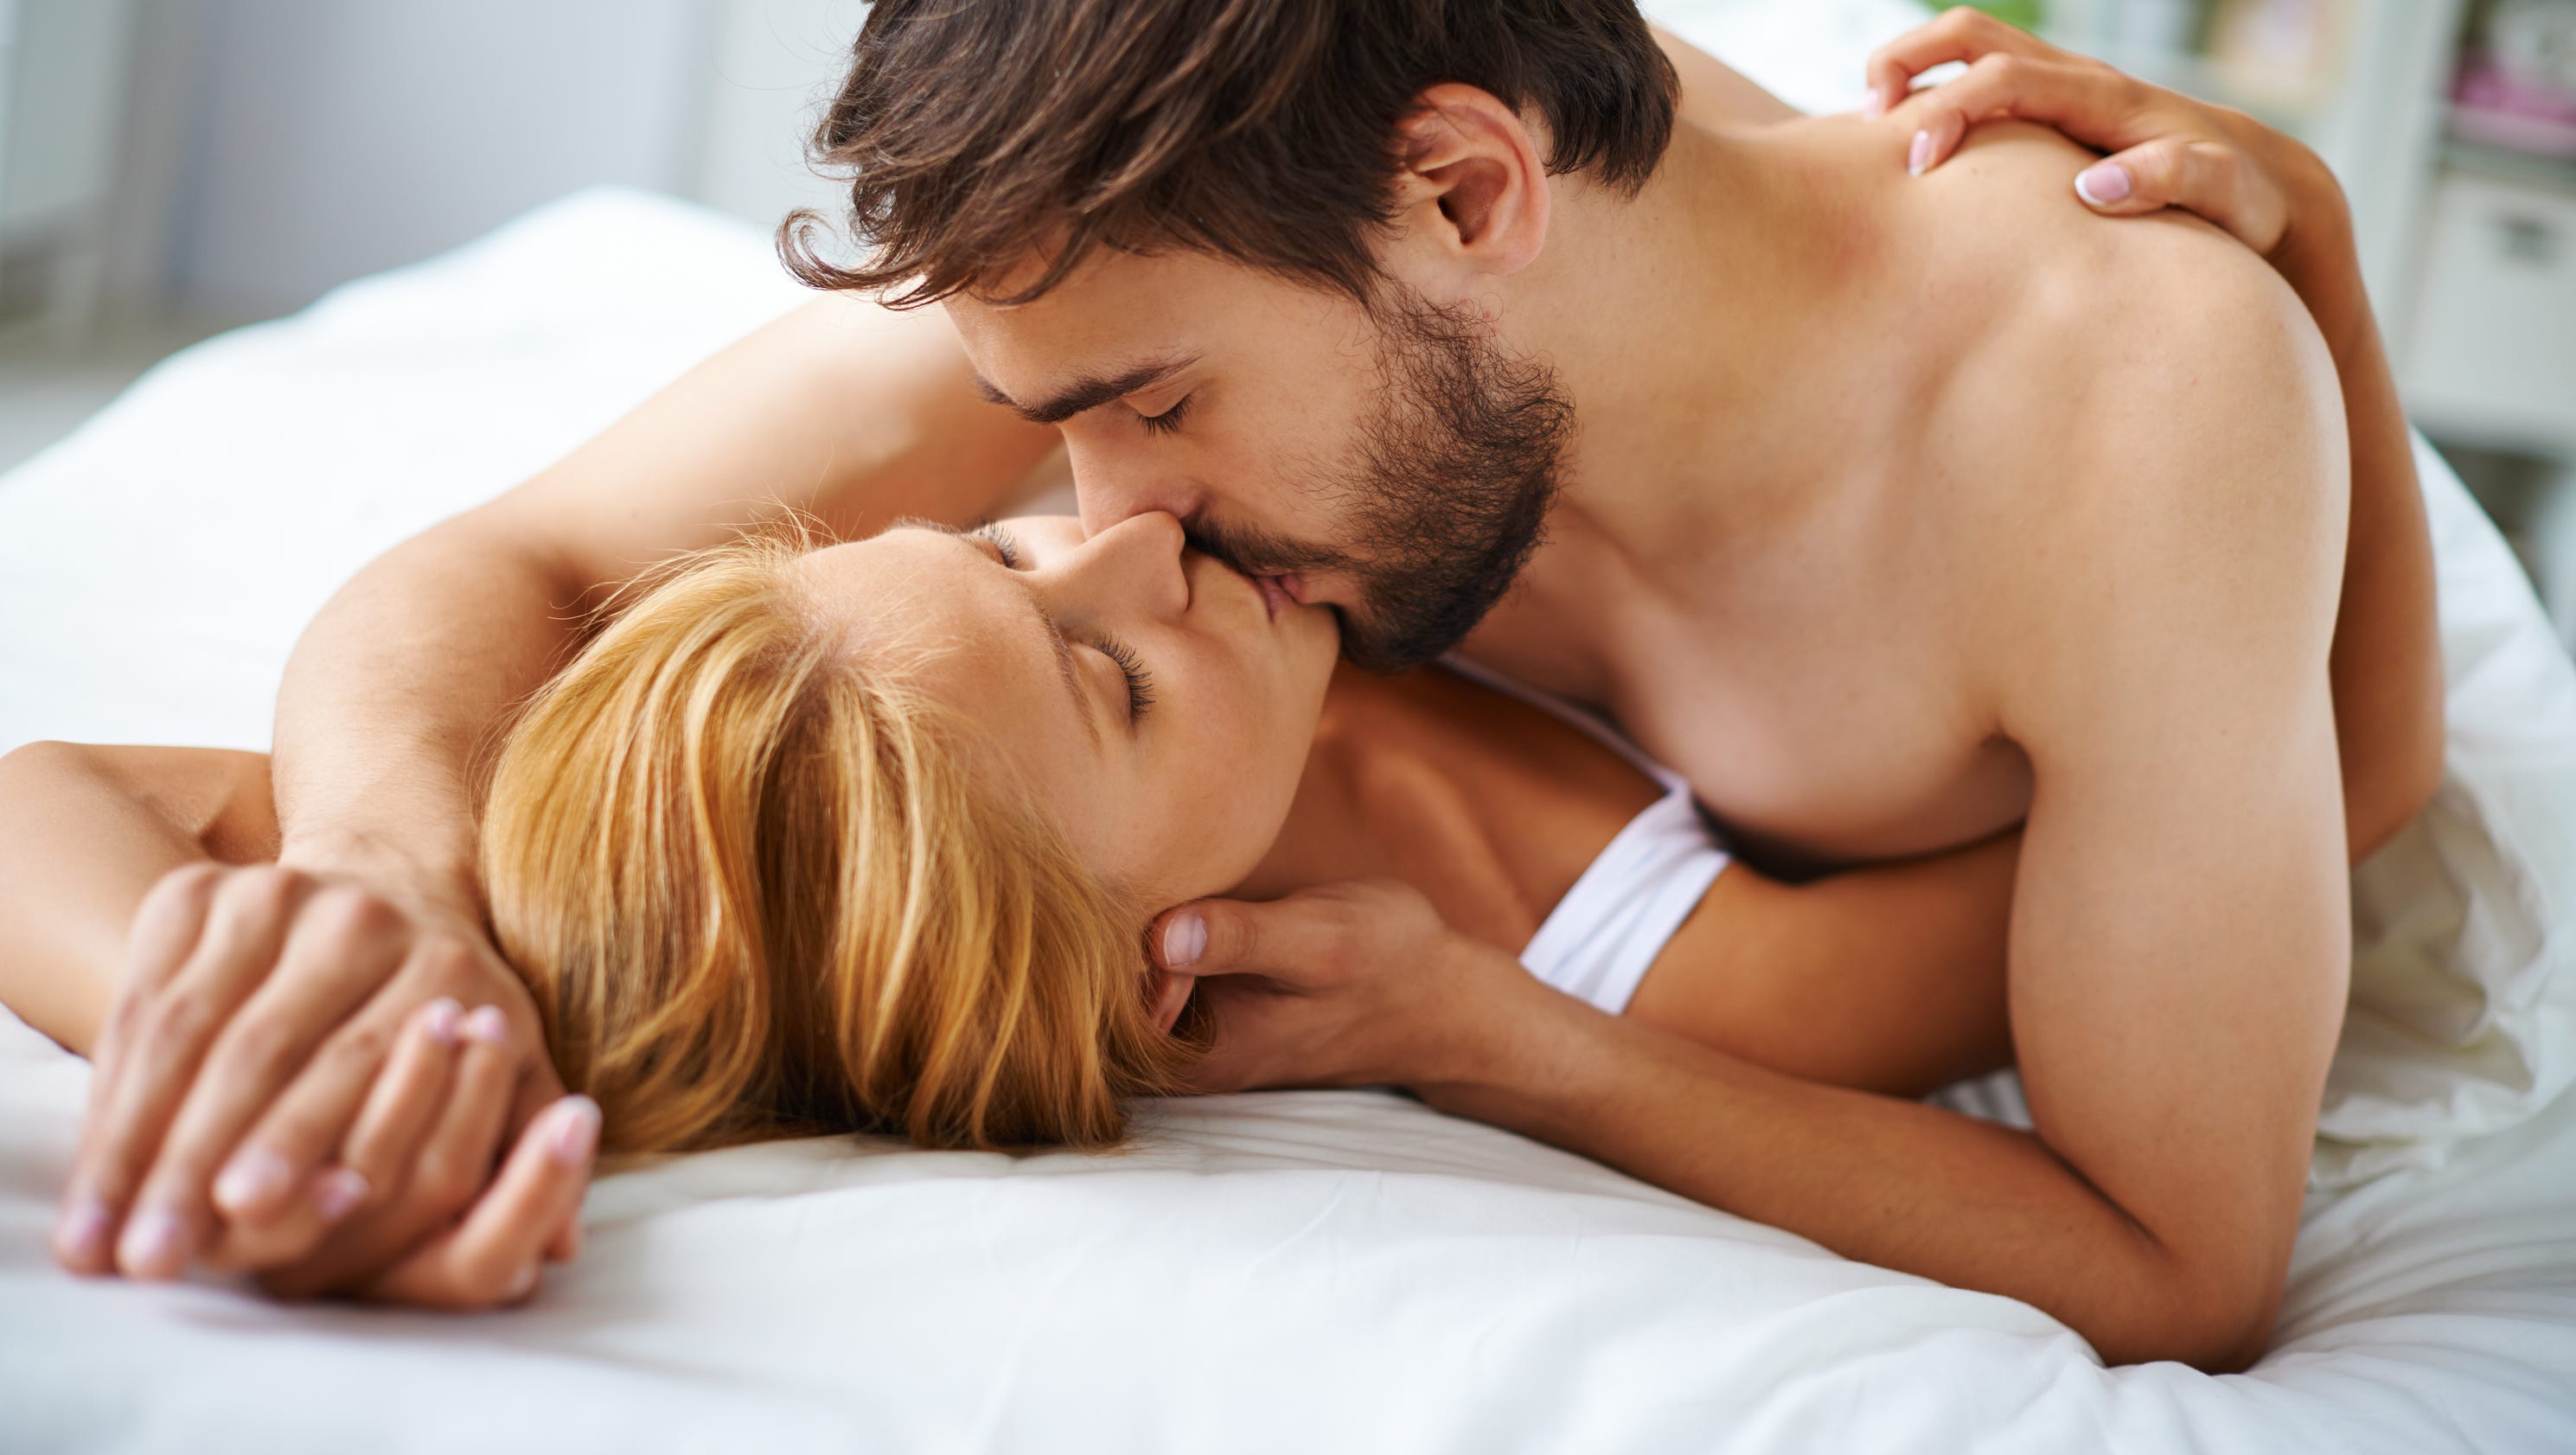 Www Husbandwifesex Great how often should you have sex with your partner?